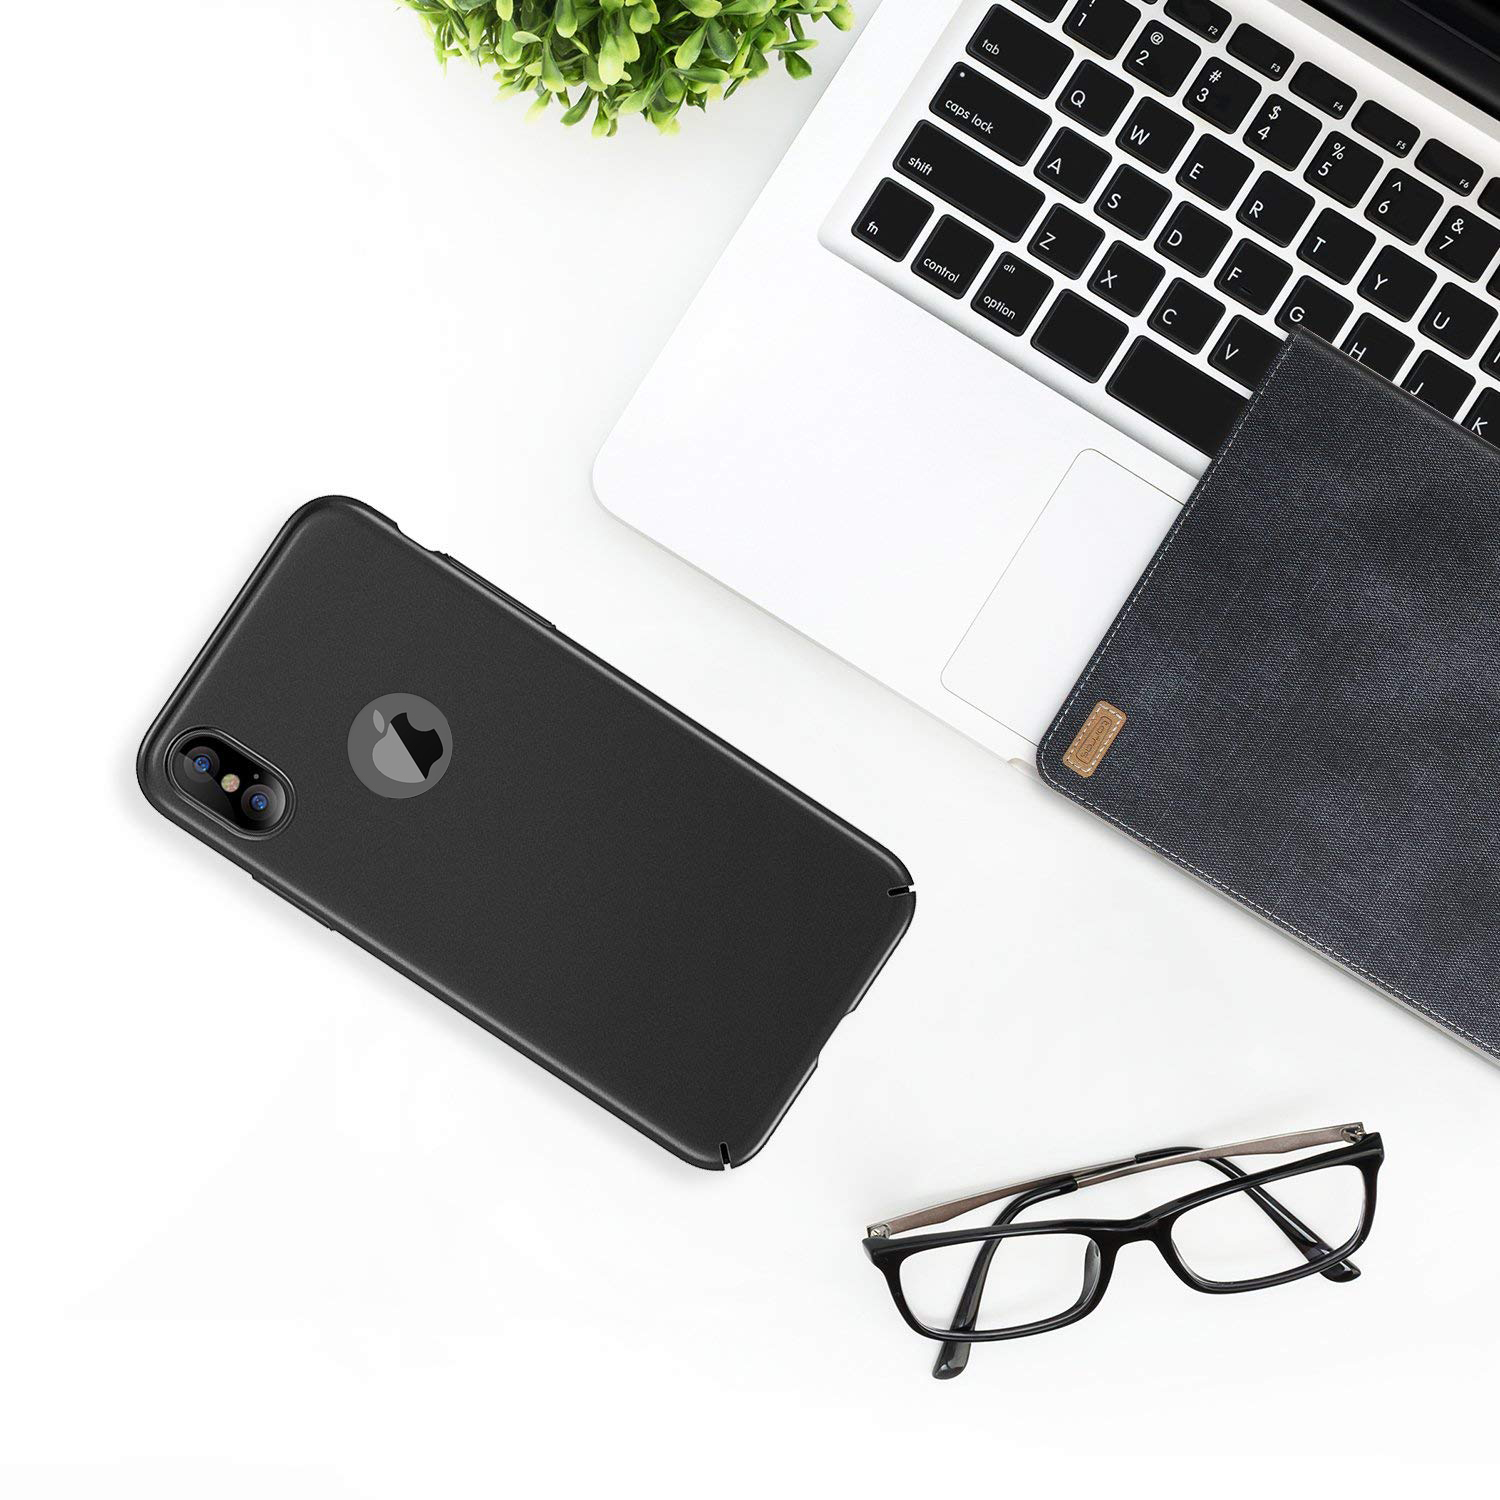 Thin-Slim-Hard-Case-Tempered-Glass-Cover-For-Apple-iPhone-X-XS-XR-Max-10-8-7-6s miniatuur 20